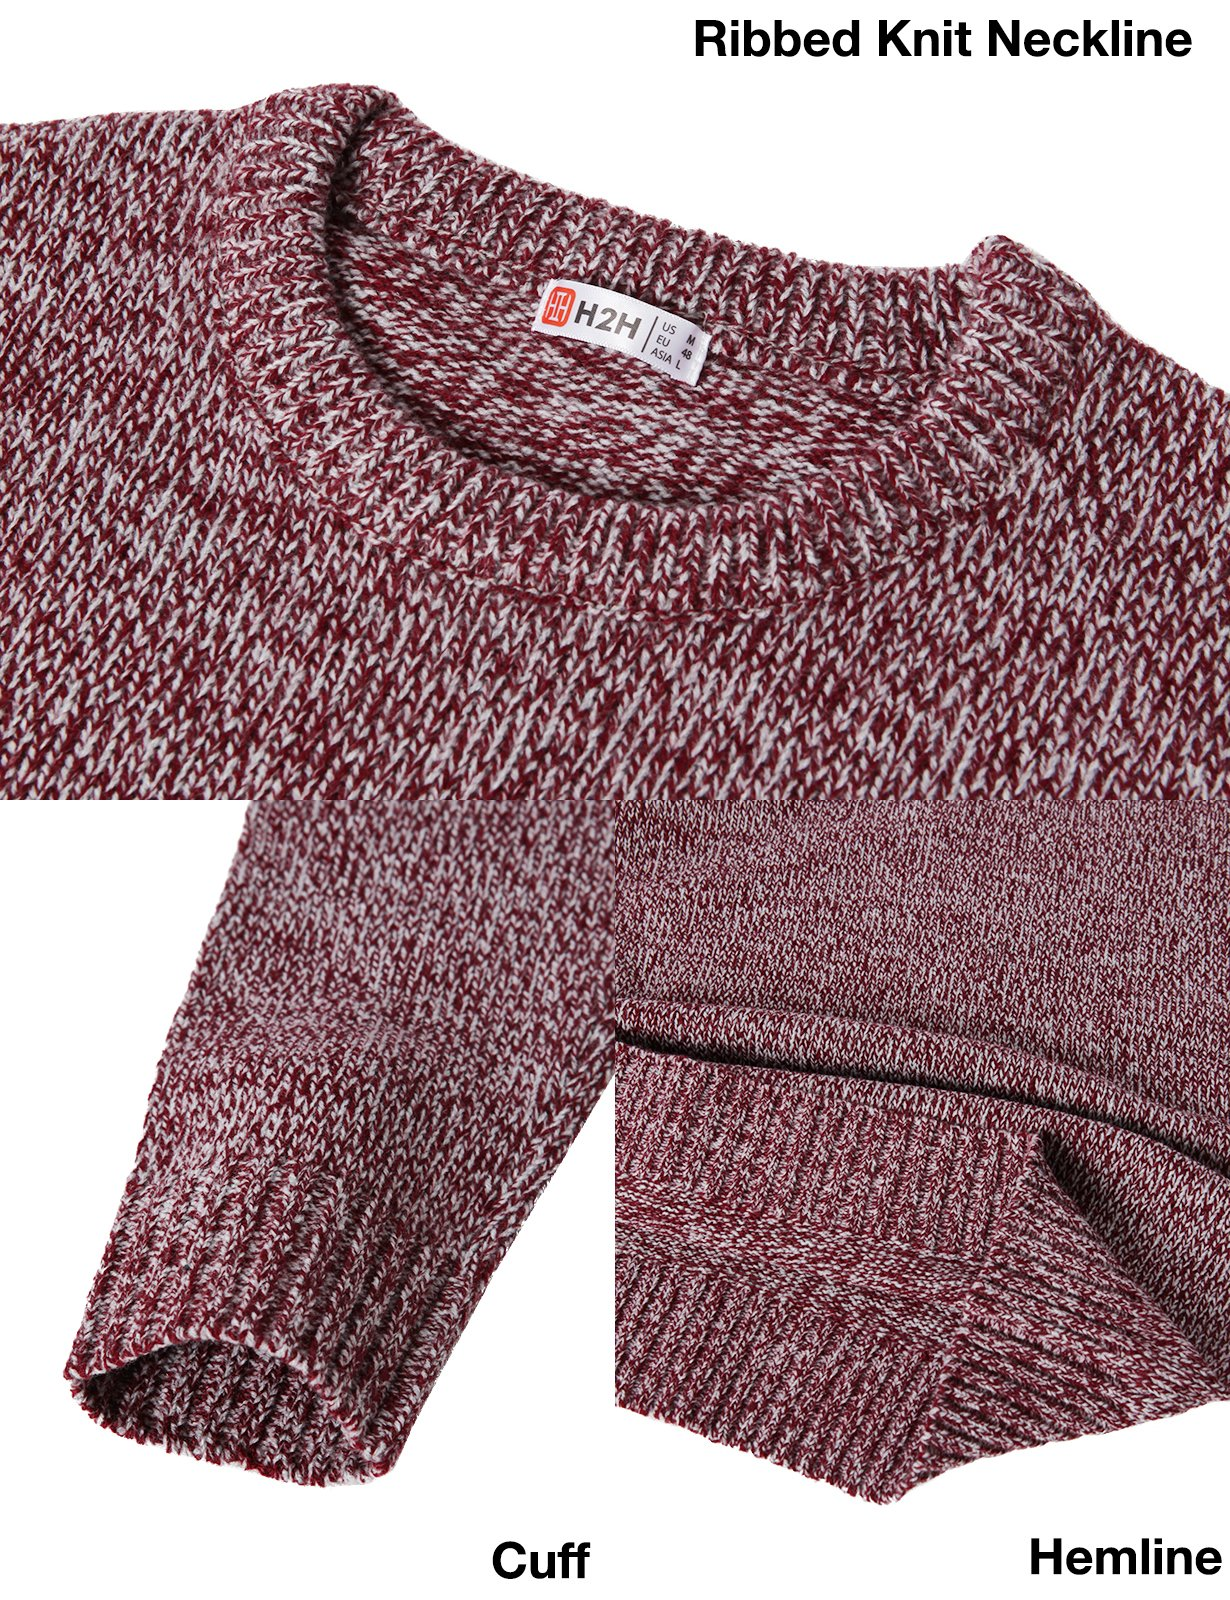 H2H Mens Slim Fit Basic Ribbed Thermal Turtleneck Pullover Sweaters Maroon US M/Asia L (KMOSWL0122) by H2H (Image #5)